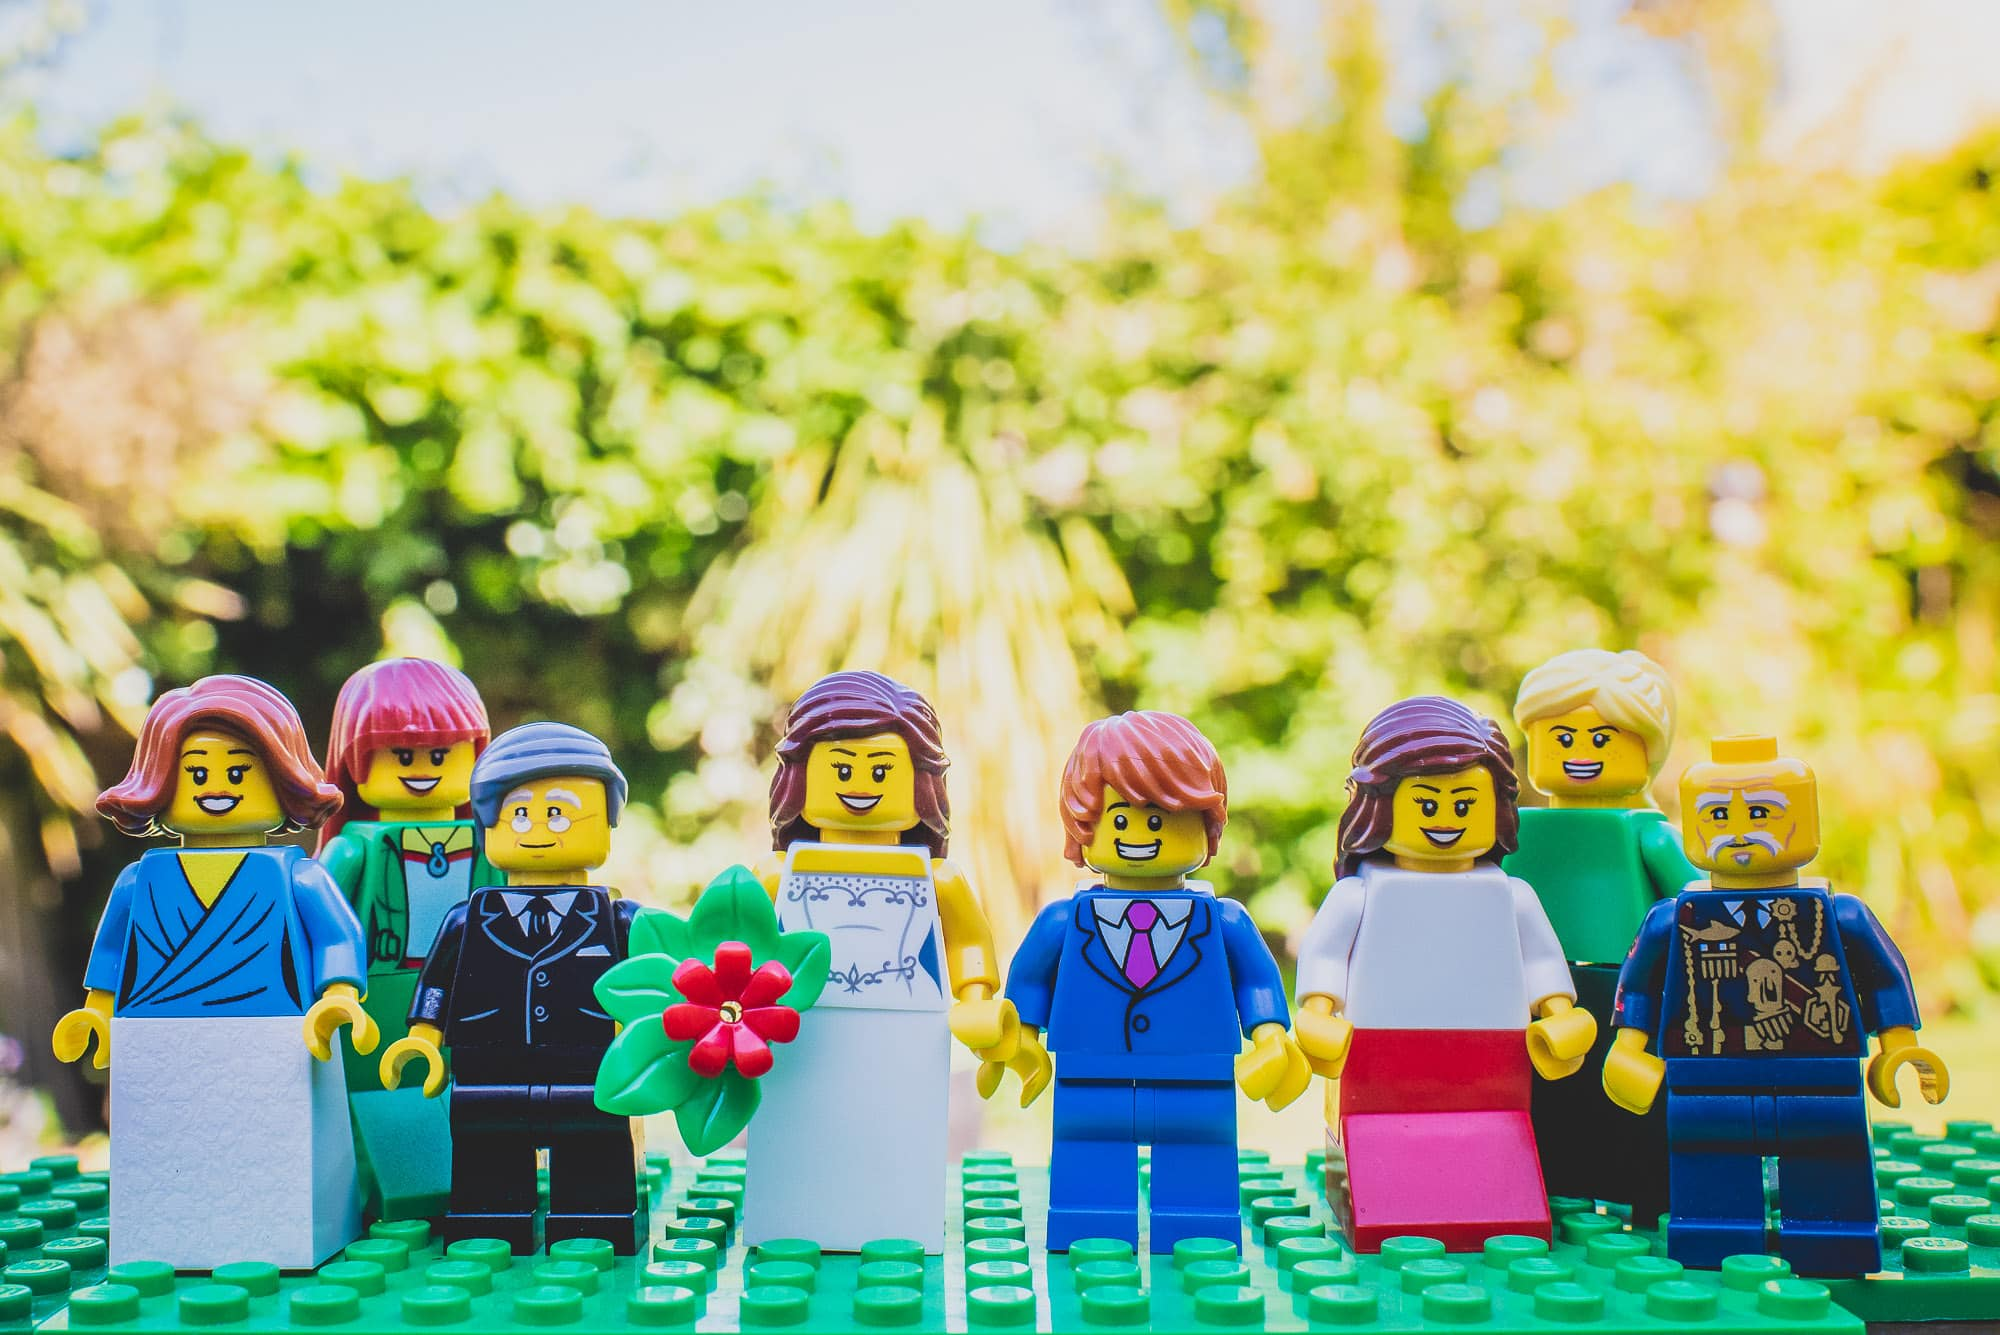 Lego Family Group Wedding Photo